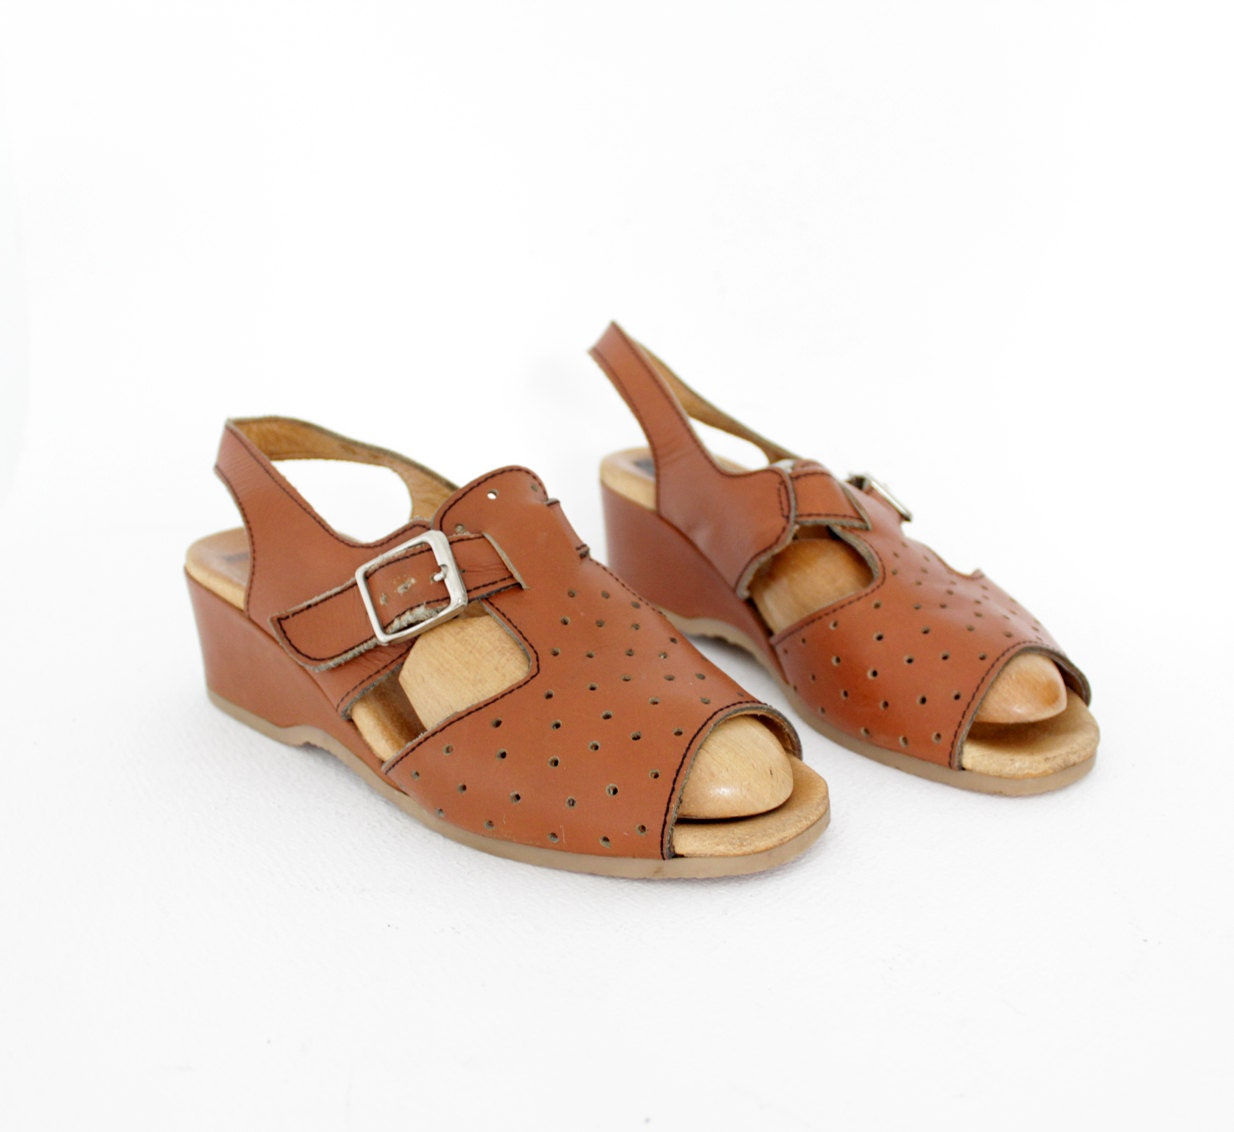 vintage shoes 70s perforated wedge sandals 38 7 5 by